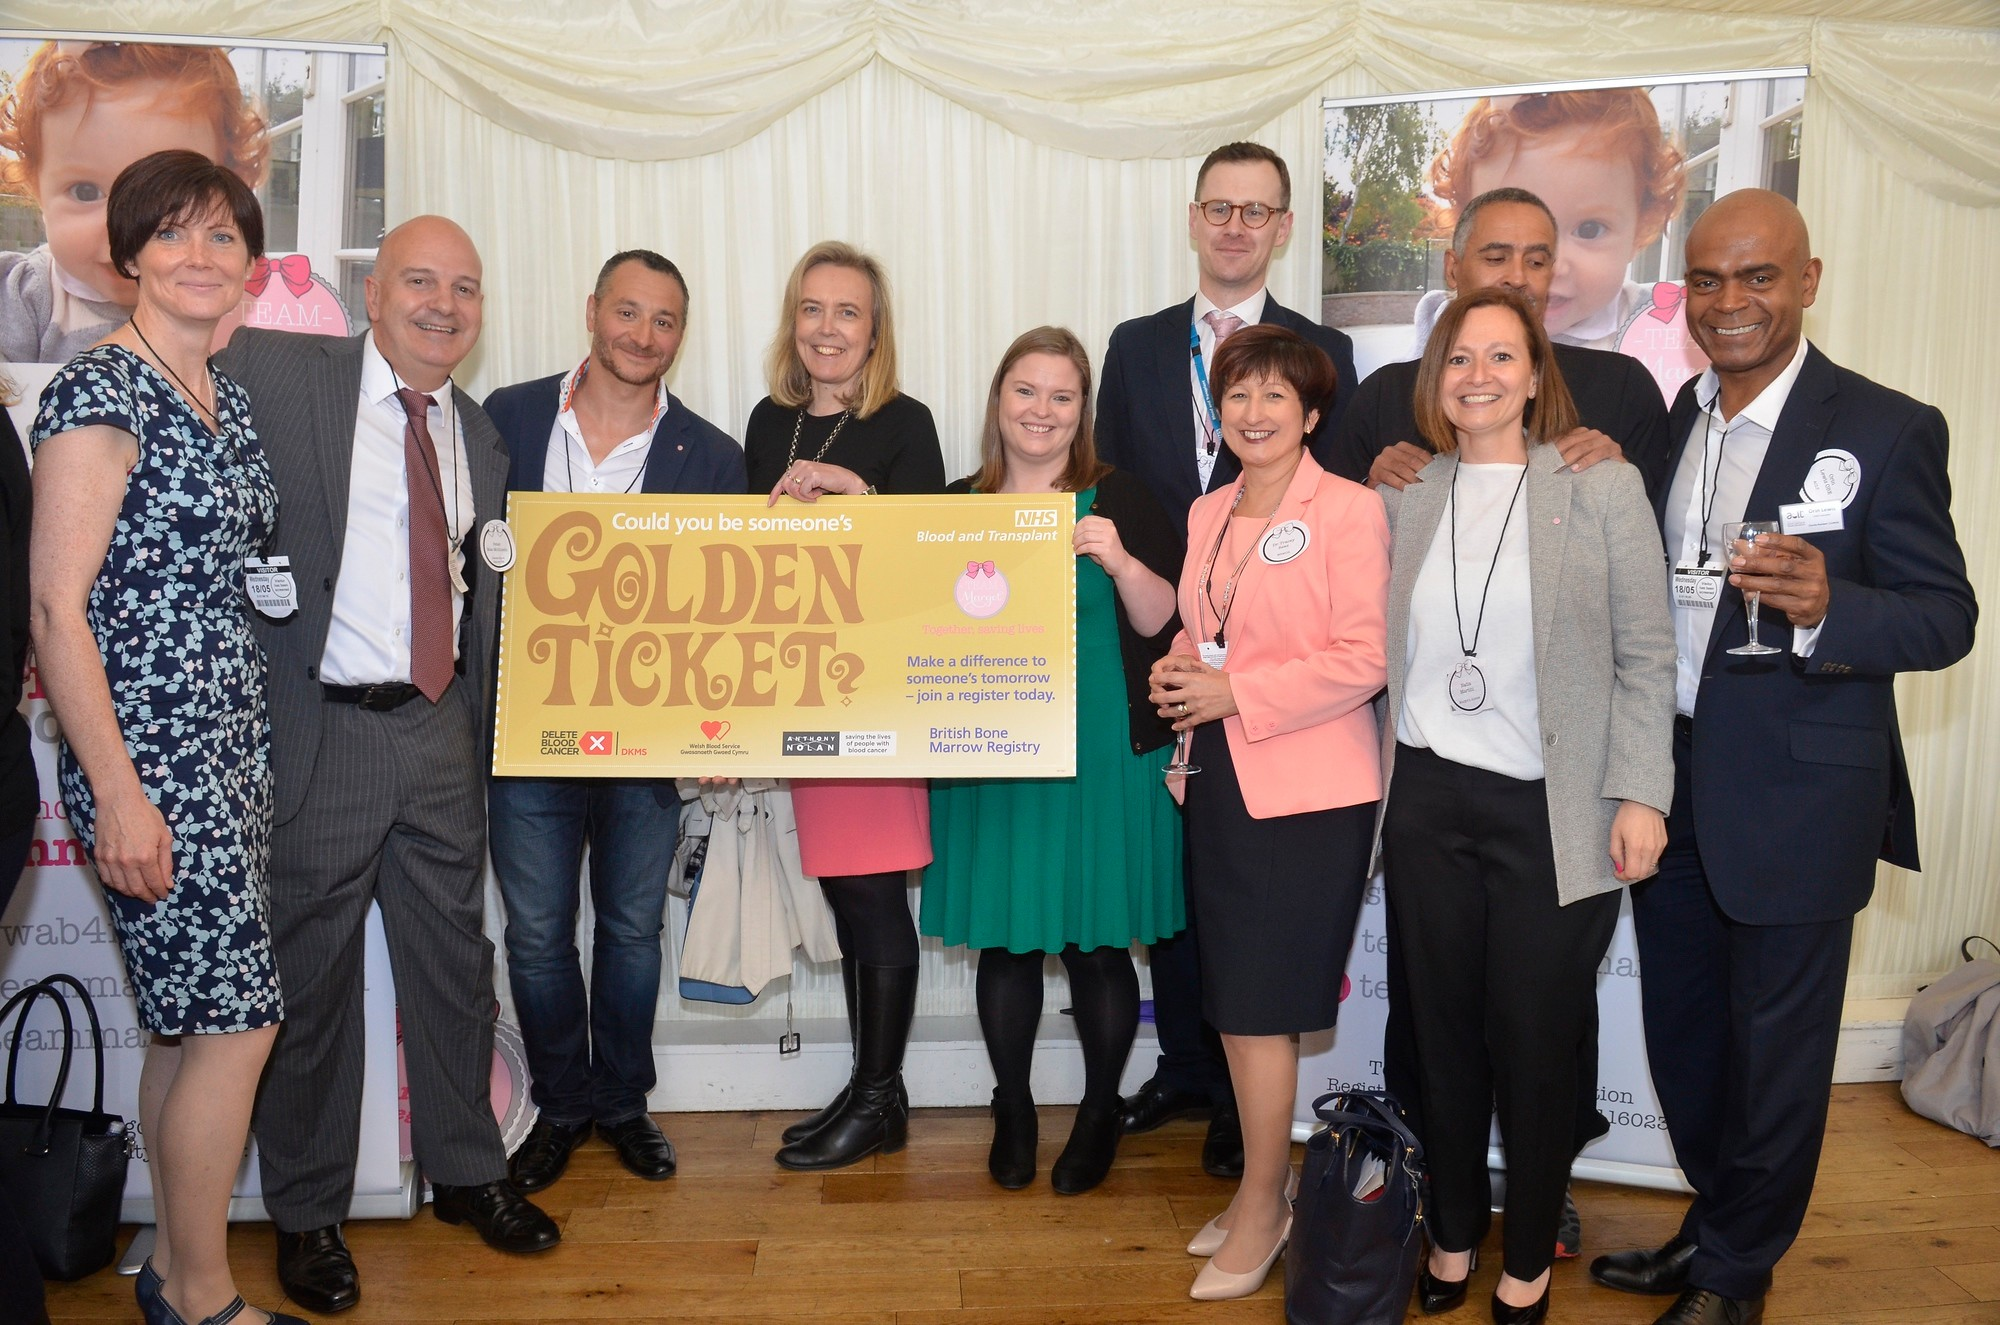 Together, saving lives - (L to R) Emma Cook, CEO Welsh Bone Marrow Donor Registry; Peter Mas-Mollinedo, CEO Delete Blood Cancer UK; Yaser Martini, Margot's father; Henny Braund, CEO Anthony Nolan; Ann O'Leary, Anthony Nolan; Theo Clarke, NHS Blood and Transplant; Dr Tracey Rees (WBMDR); Nadia Martini, Margot's auntie; Daley Thompson; Orin Lewis OBE, ACLT Charity